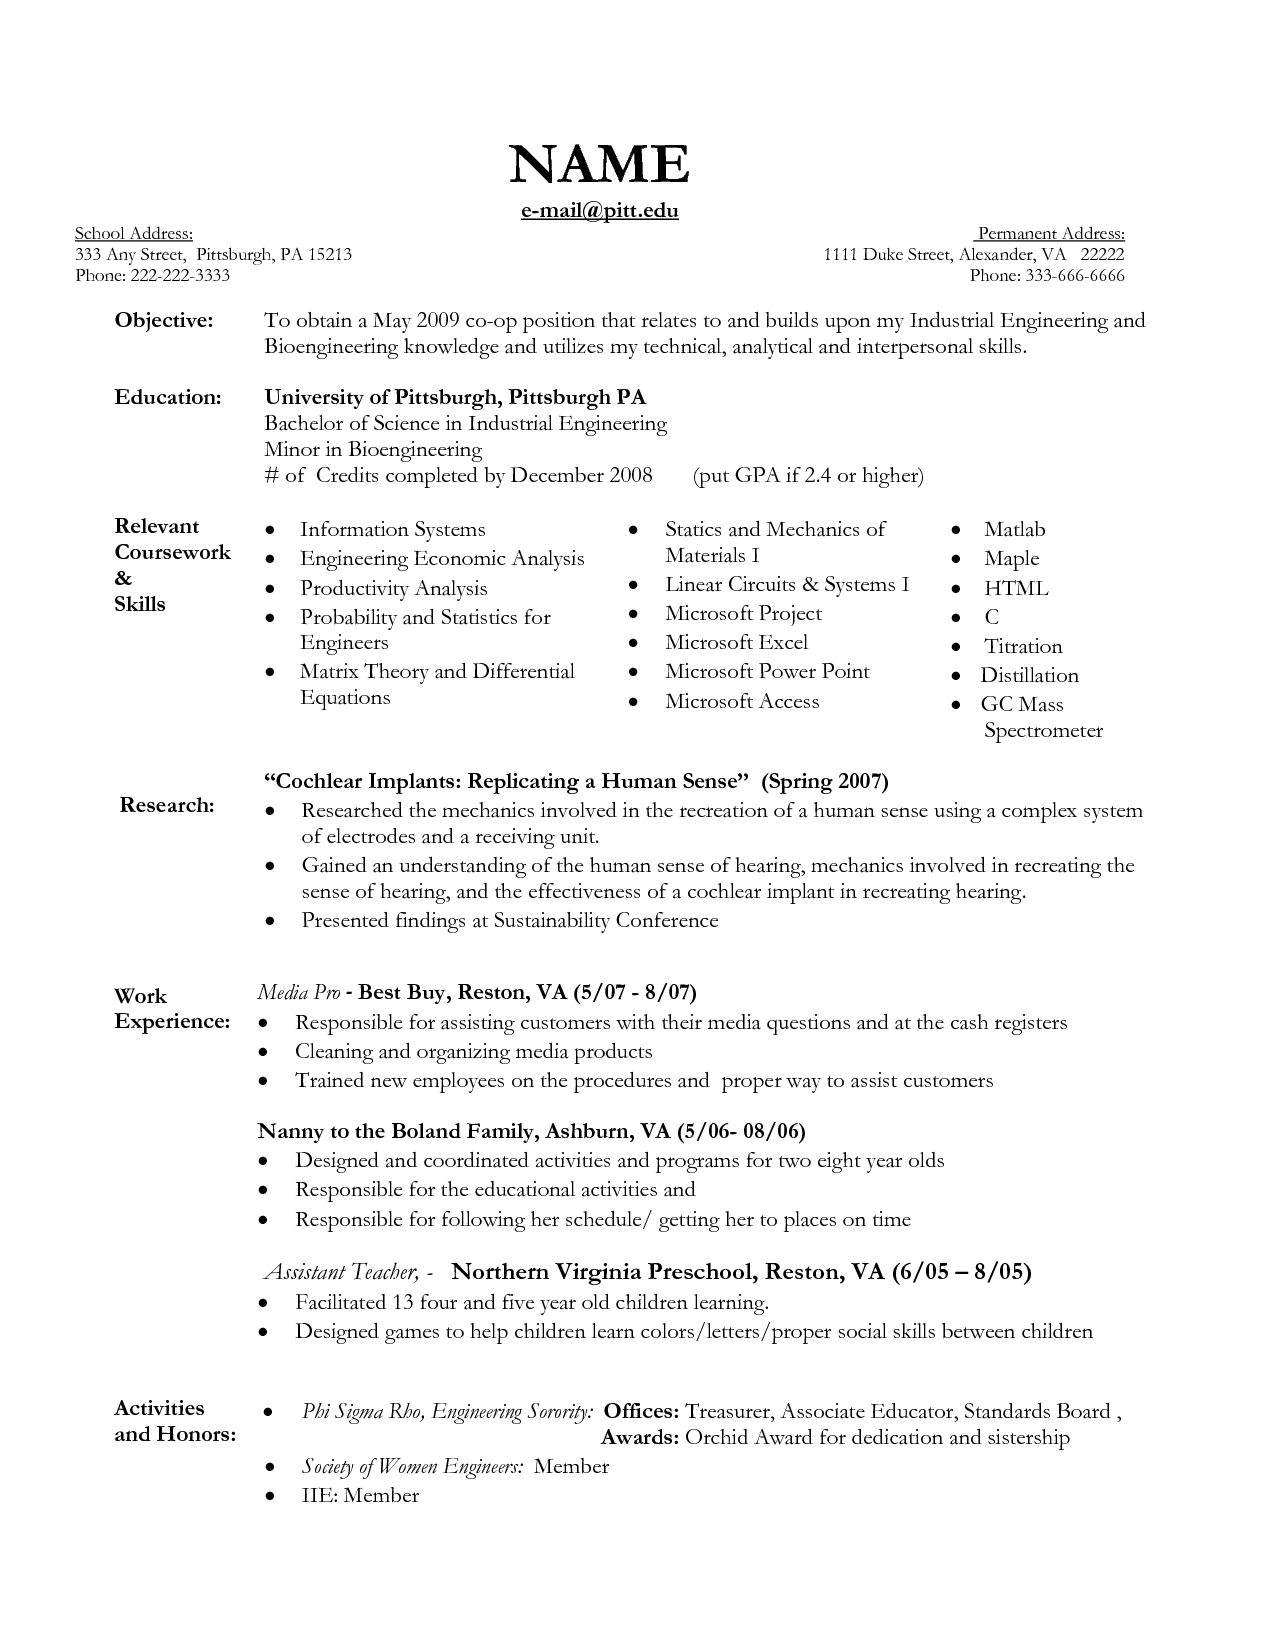 Nanny Resume Sample How To Write Coursework  Course Work  Pinterest